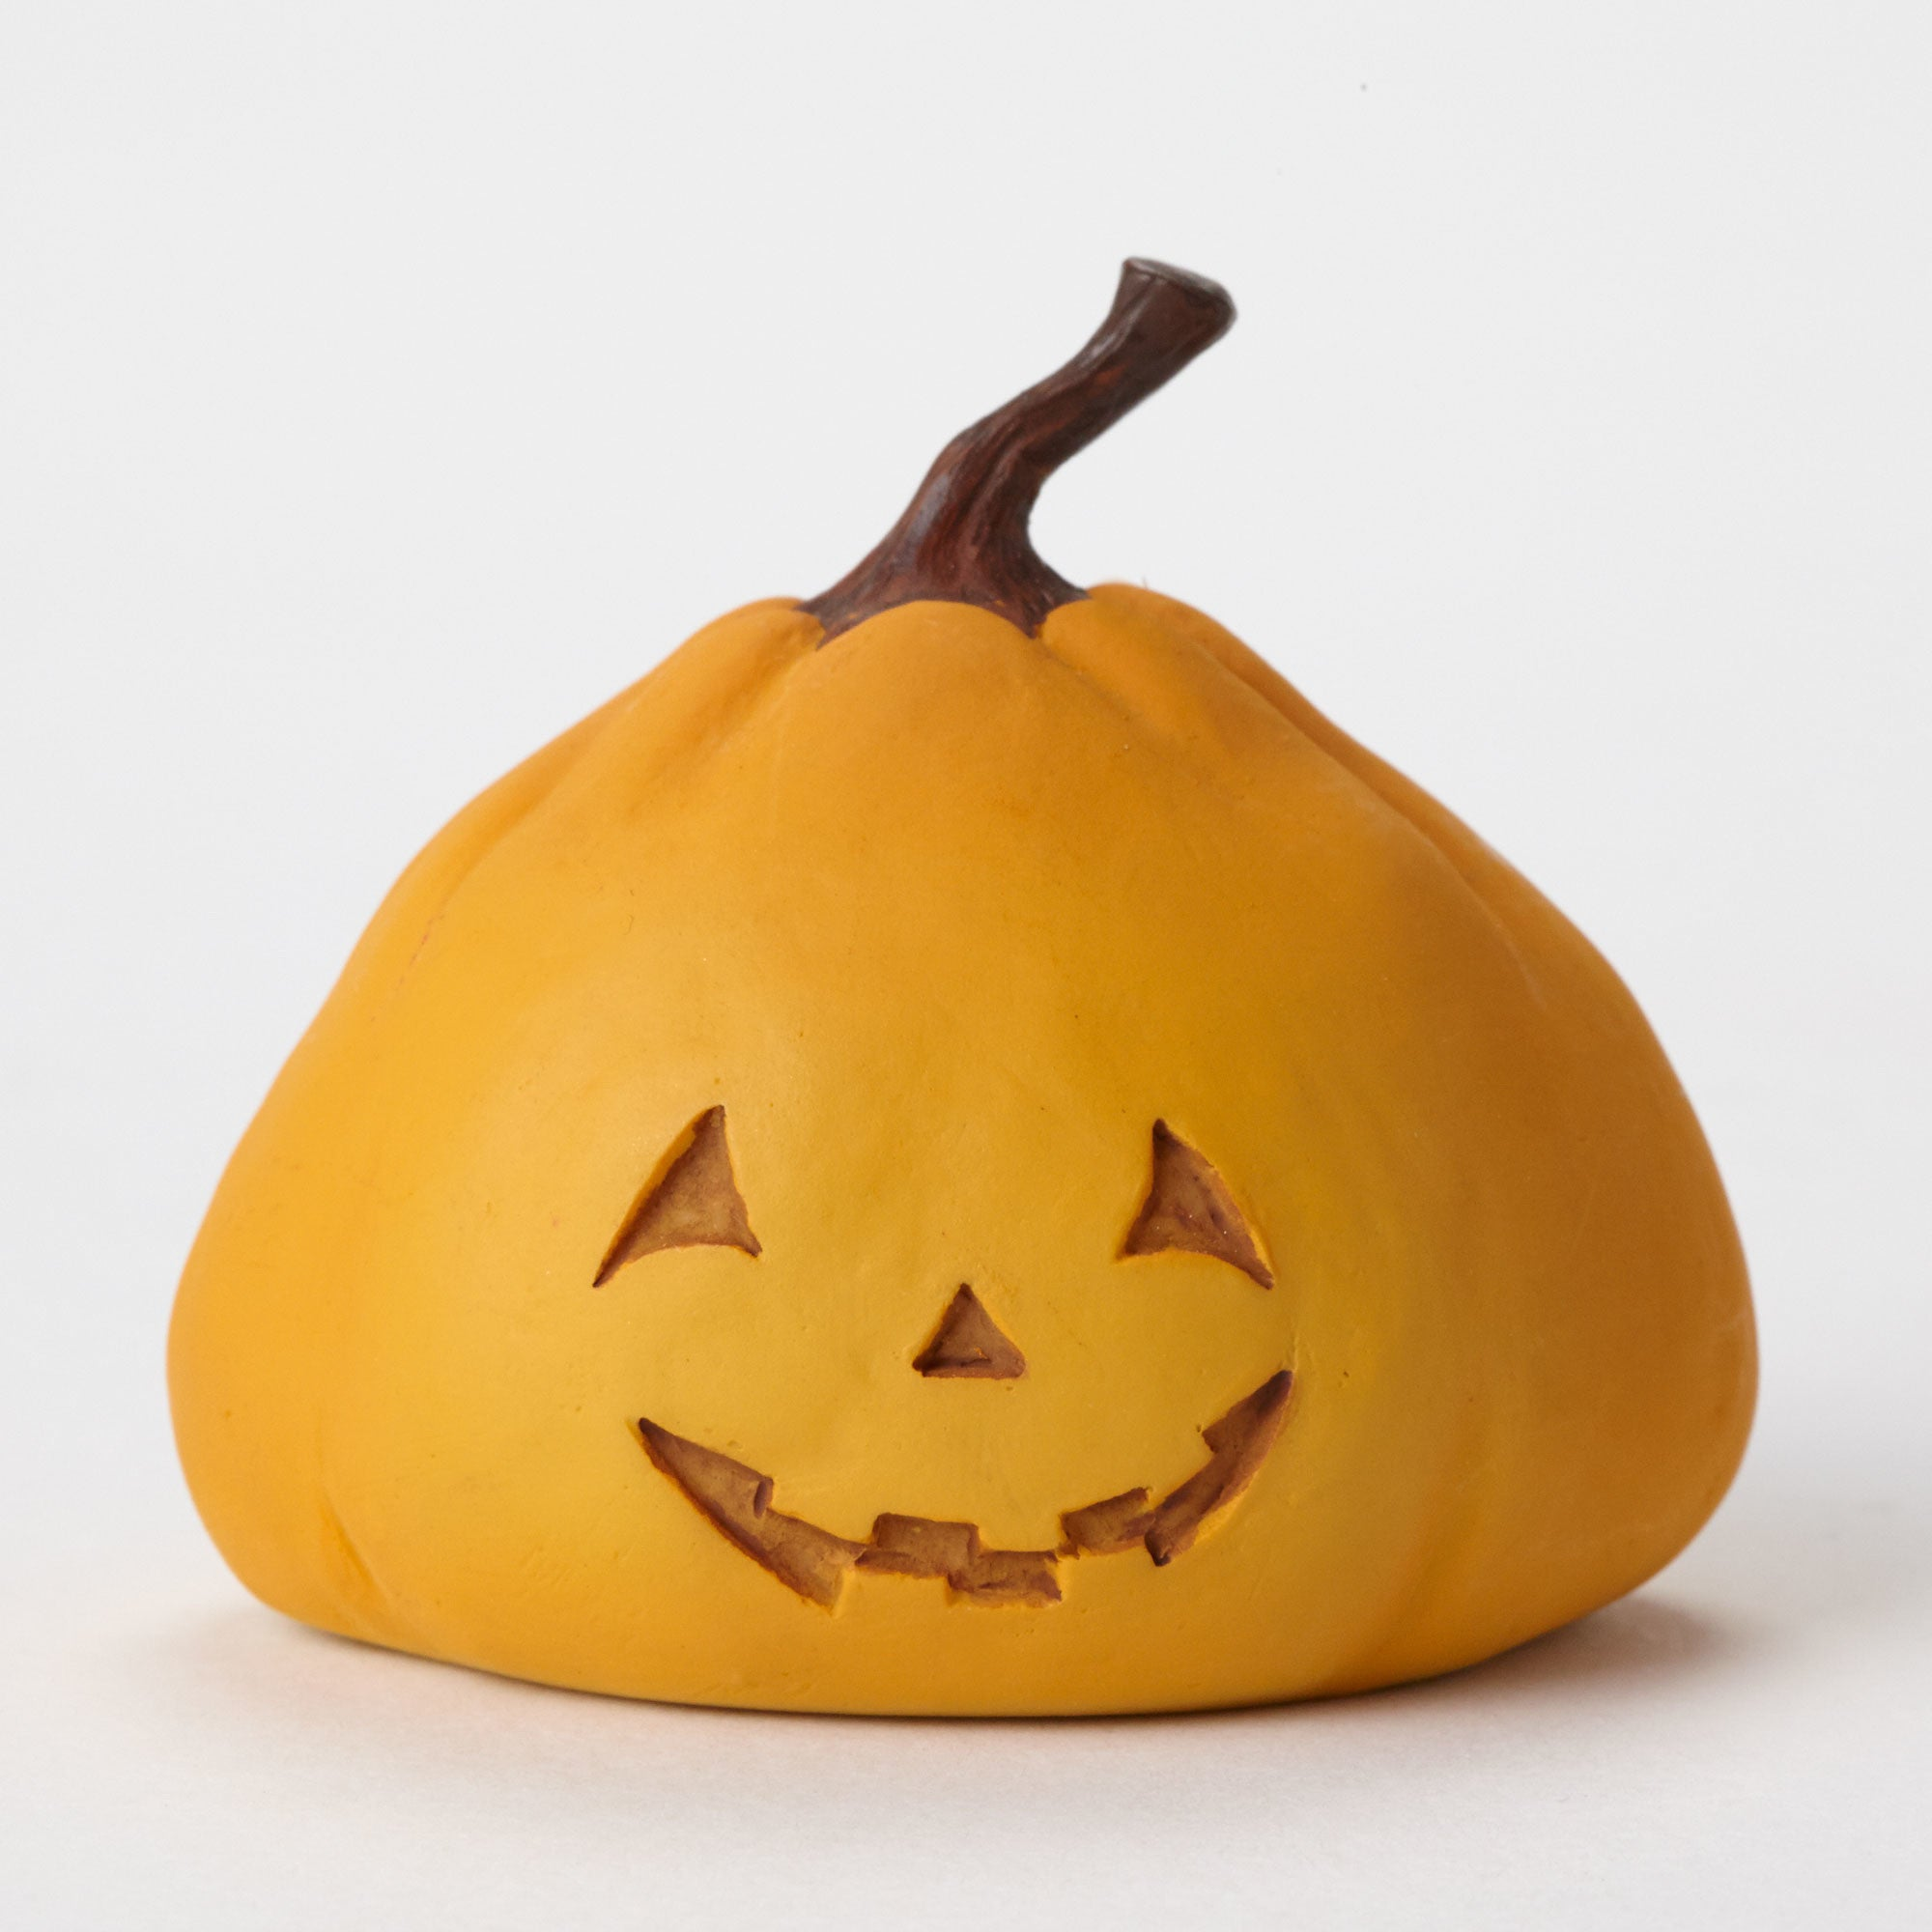 Mini Halloween Pumpkin Figurine - Smiling Jack-O-Lantern